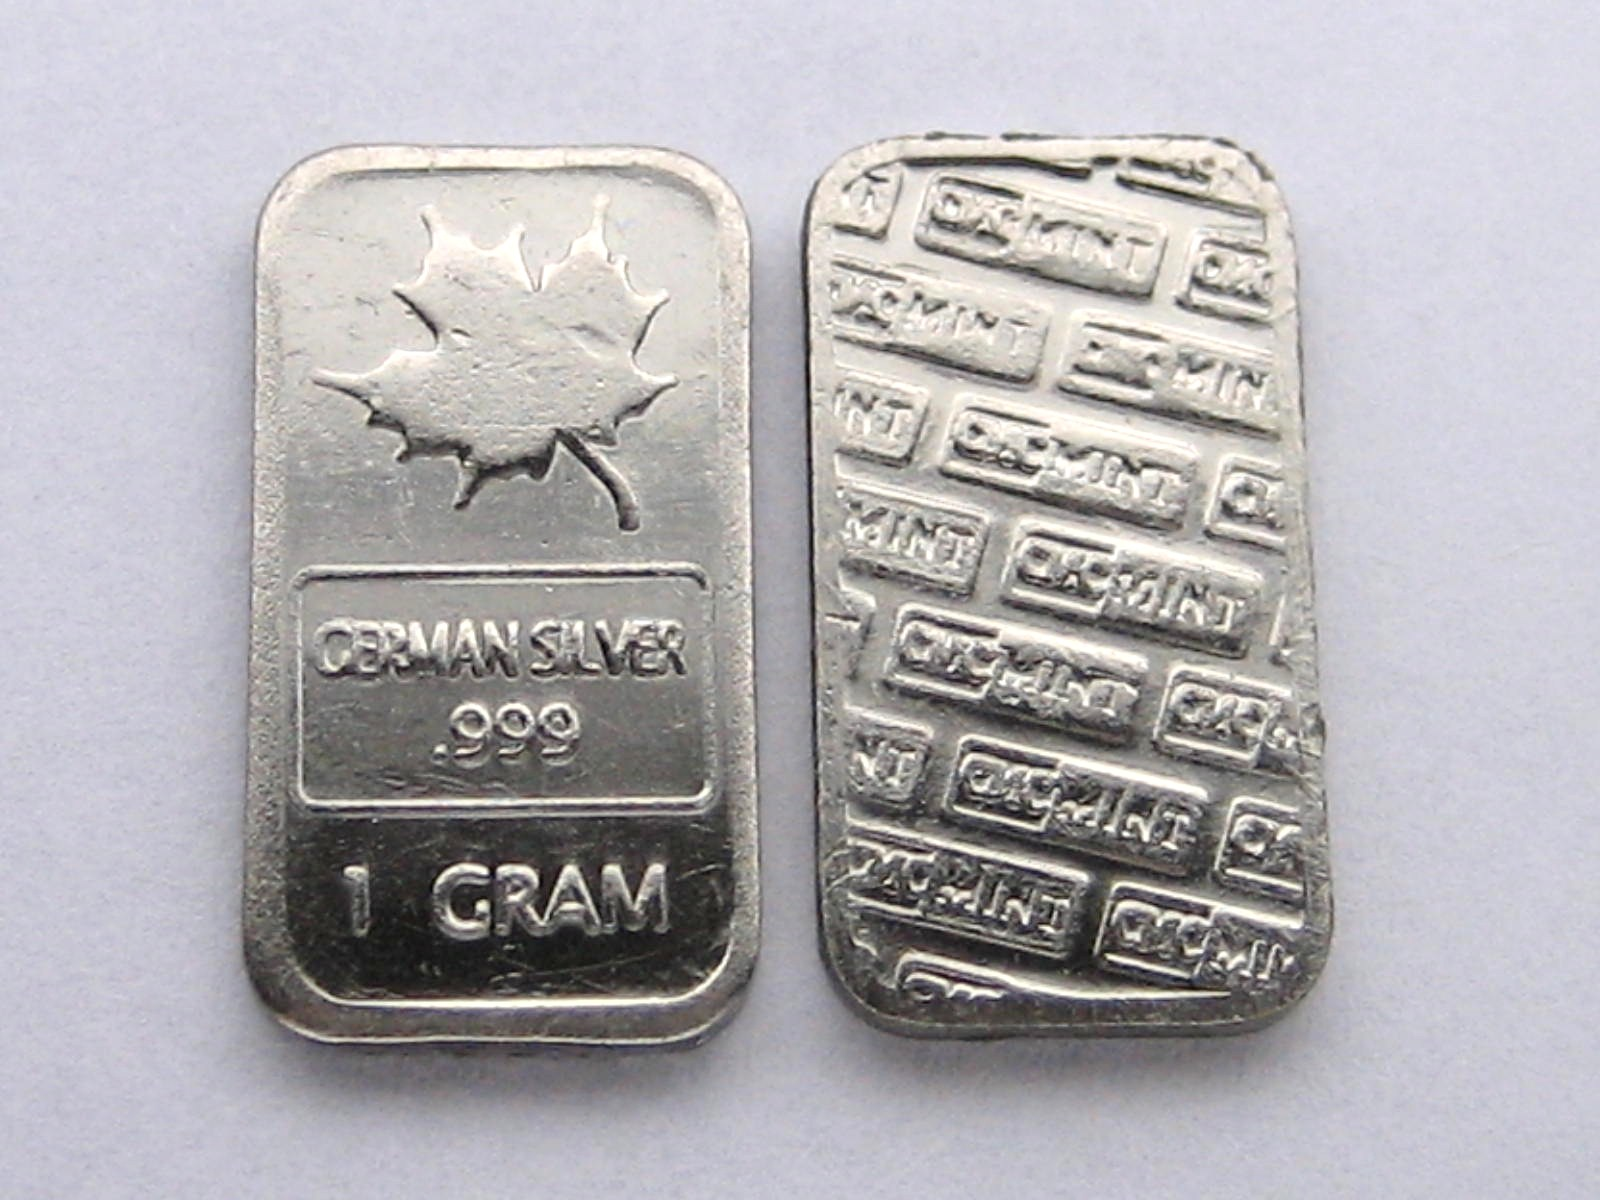 Rising Star Mint 1 Gram German Silver Maple Leaf Bullion